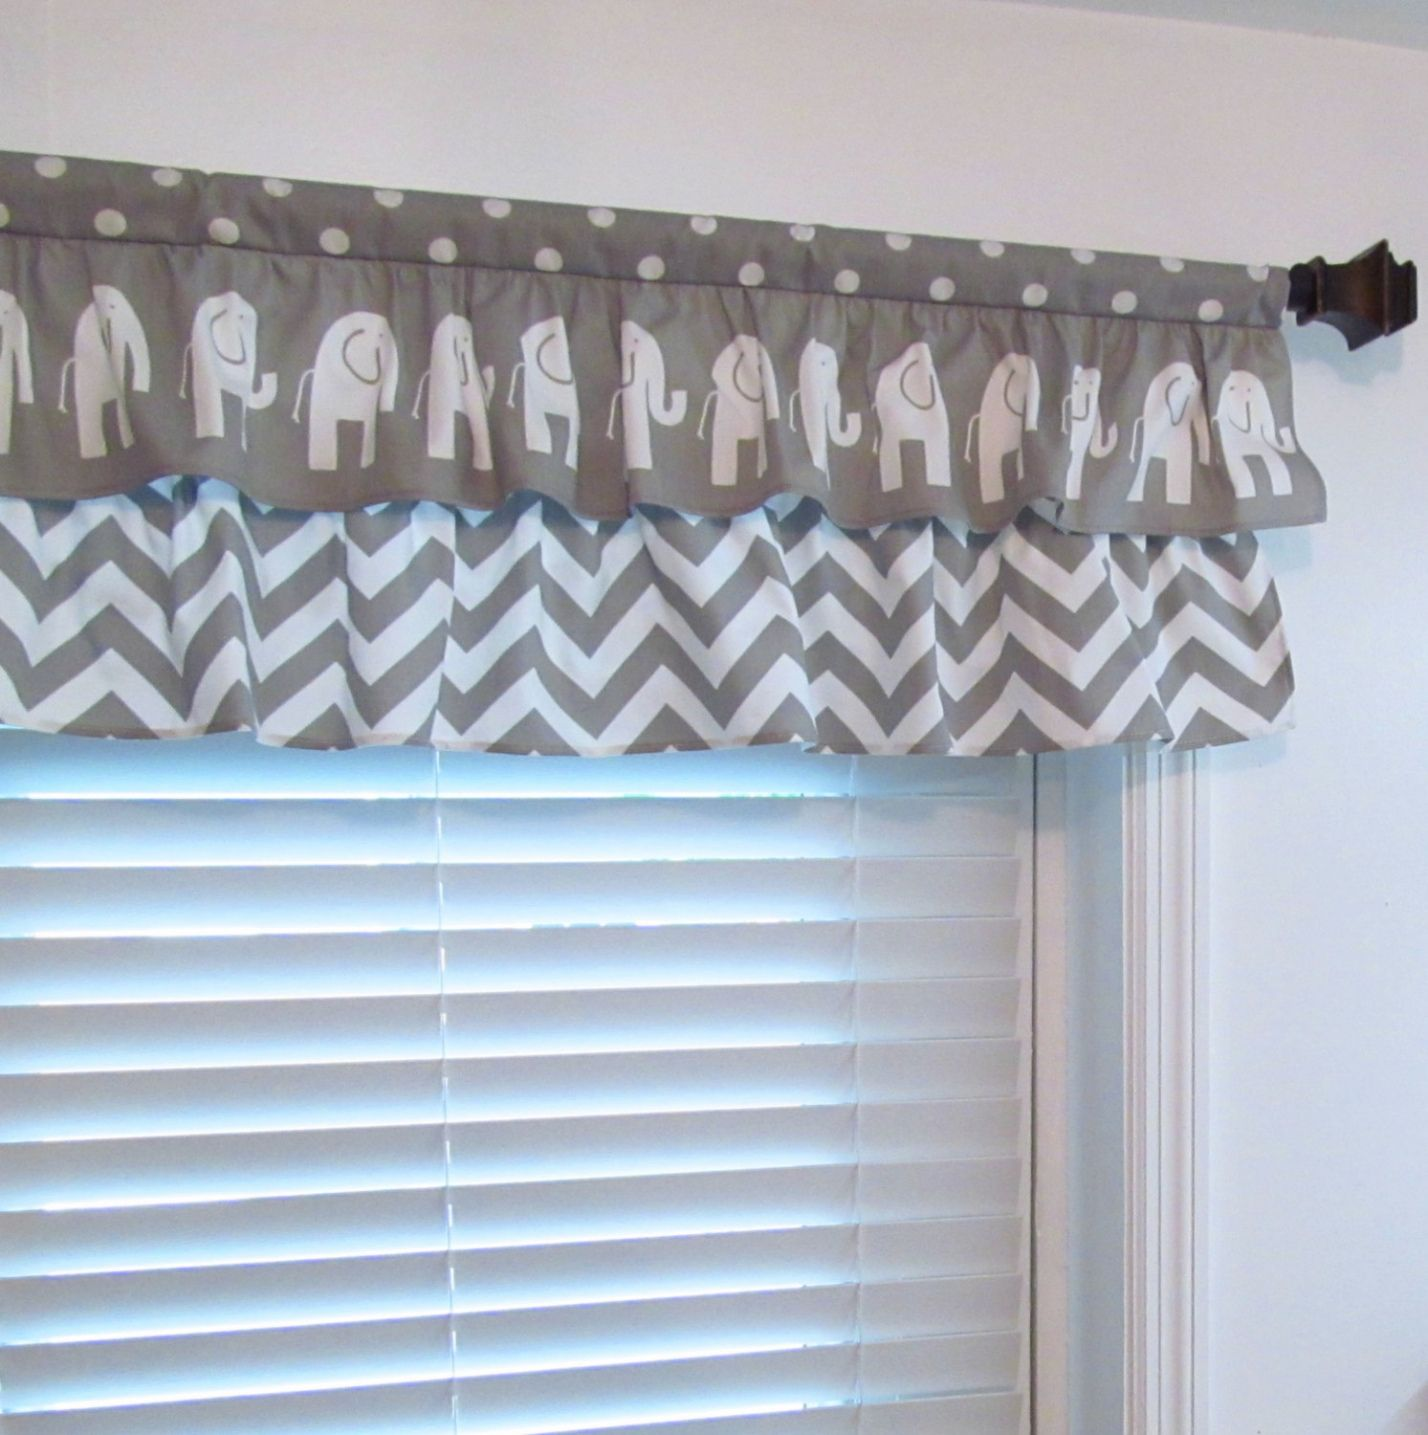 20+ Valance For Baby Room - Best Way To Paint Wood Furniture Check More At Http://www.itscultured.co… | Nursery Curtains Boy, Nursery Valance, Baby Elephant Nursery